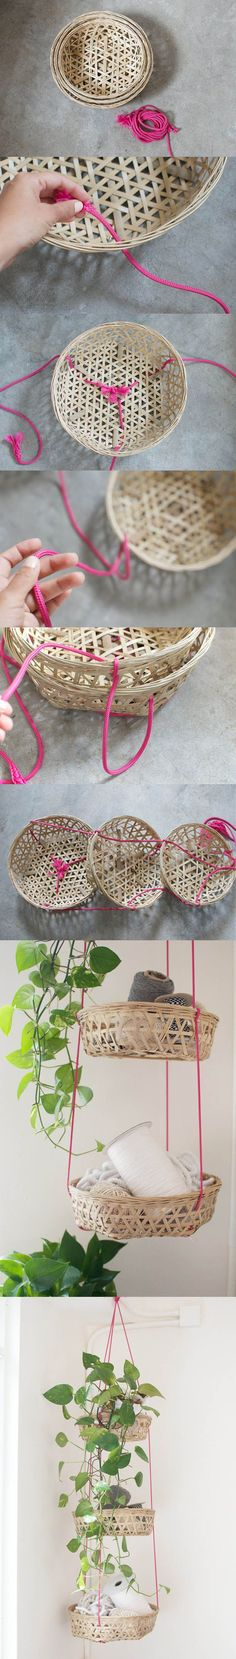 3-tiered hanging basket DIY